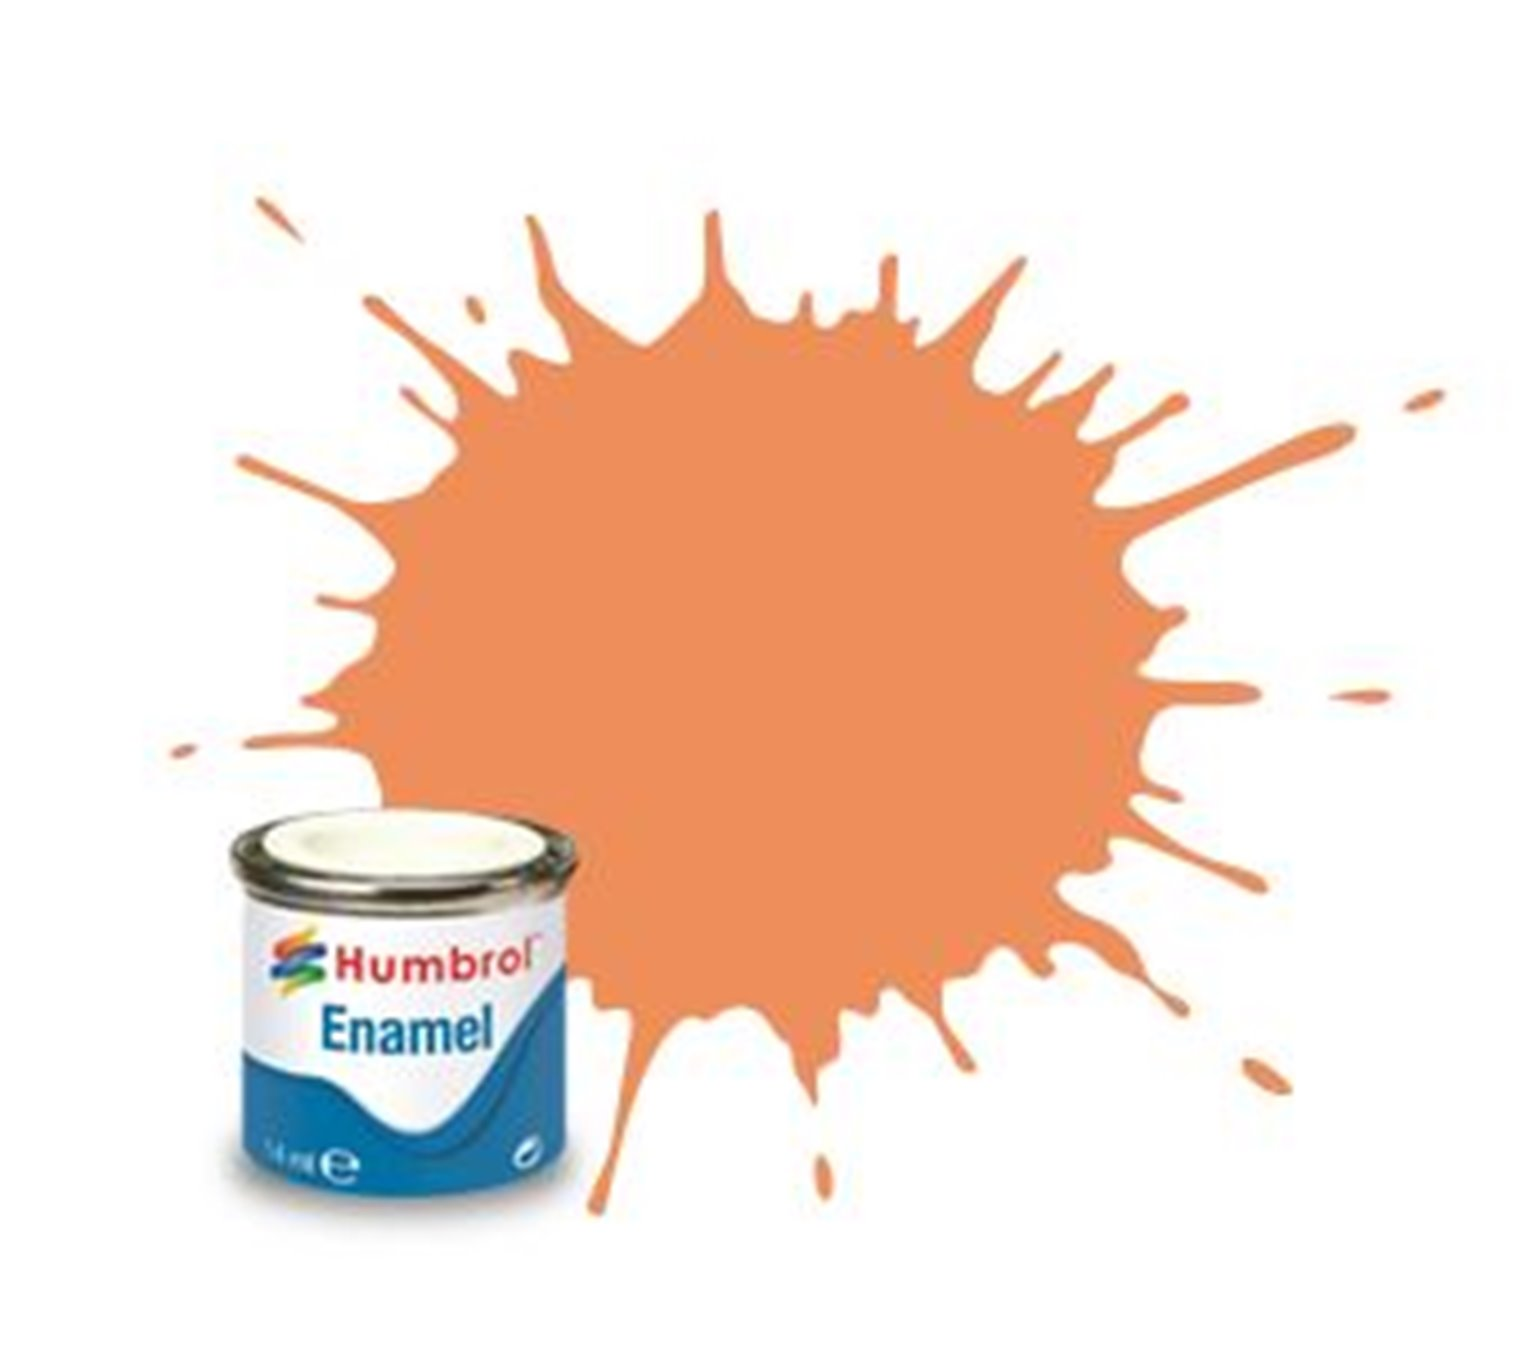 Humbrol 61 Flesh Matt - 14ml Enamel Paint